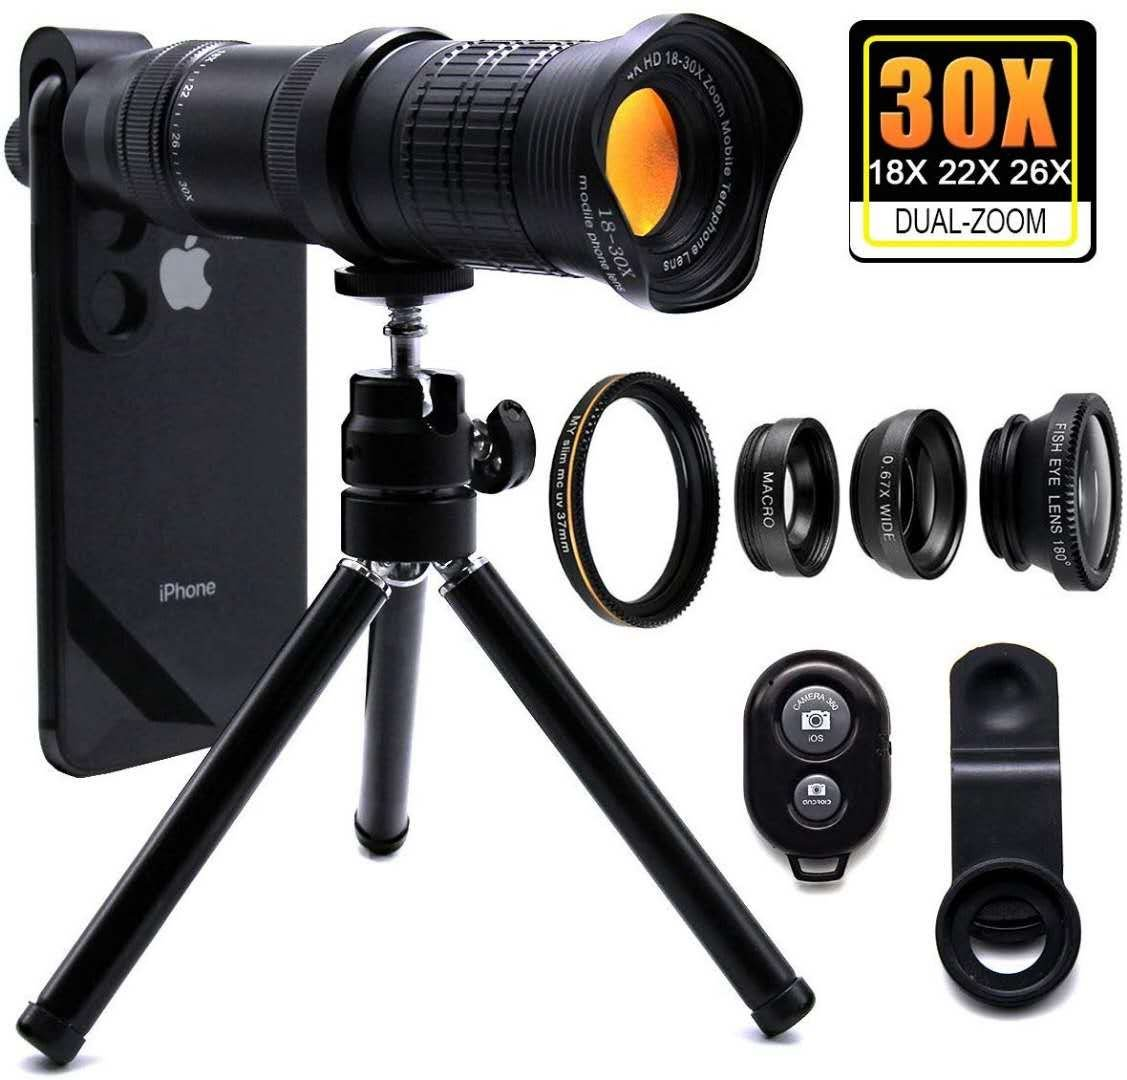 quality design 7f659 93f91 18X-30X Zoom Telephoto Lens for iPhone XS, iPhone XS Max, iPhone X ...